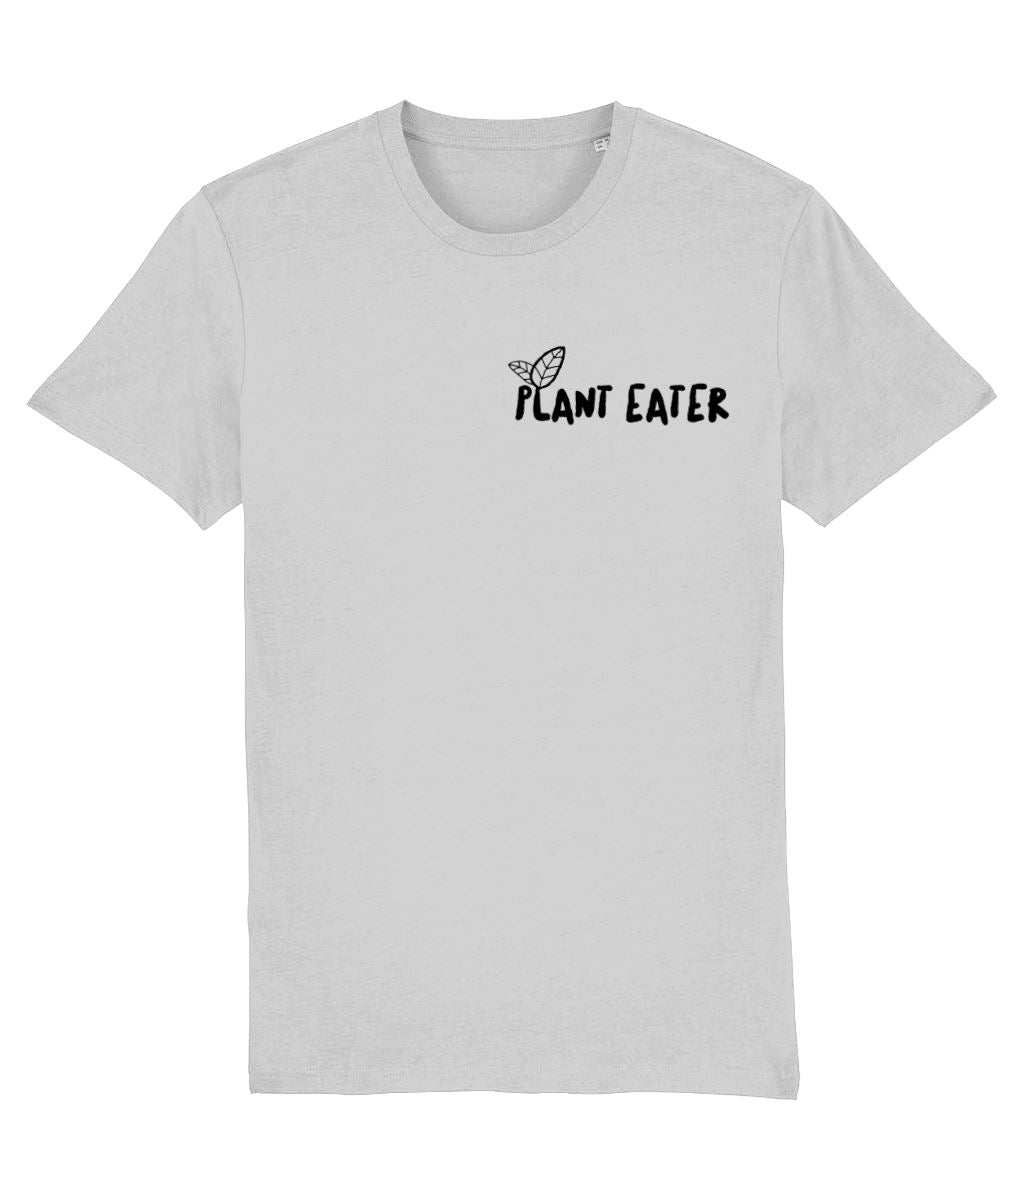 """Plant Eater"" Vegan T-Shirt - 100% Organic Cotton (Unisex) Clothing Vegan Original Heather Grey XX-Small"